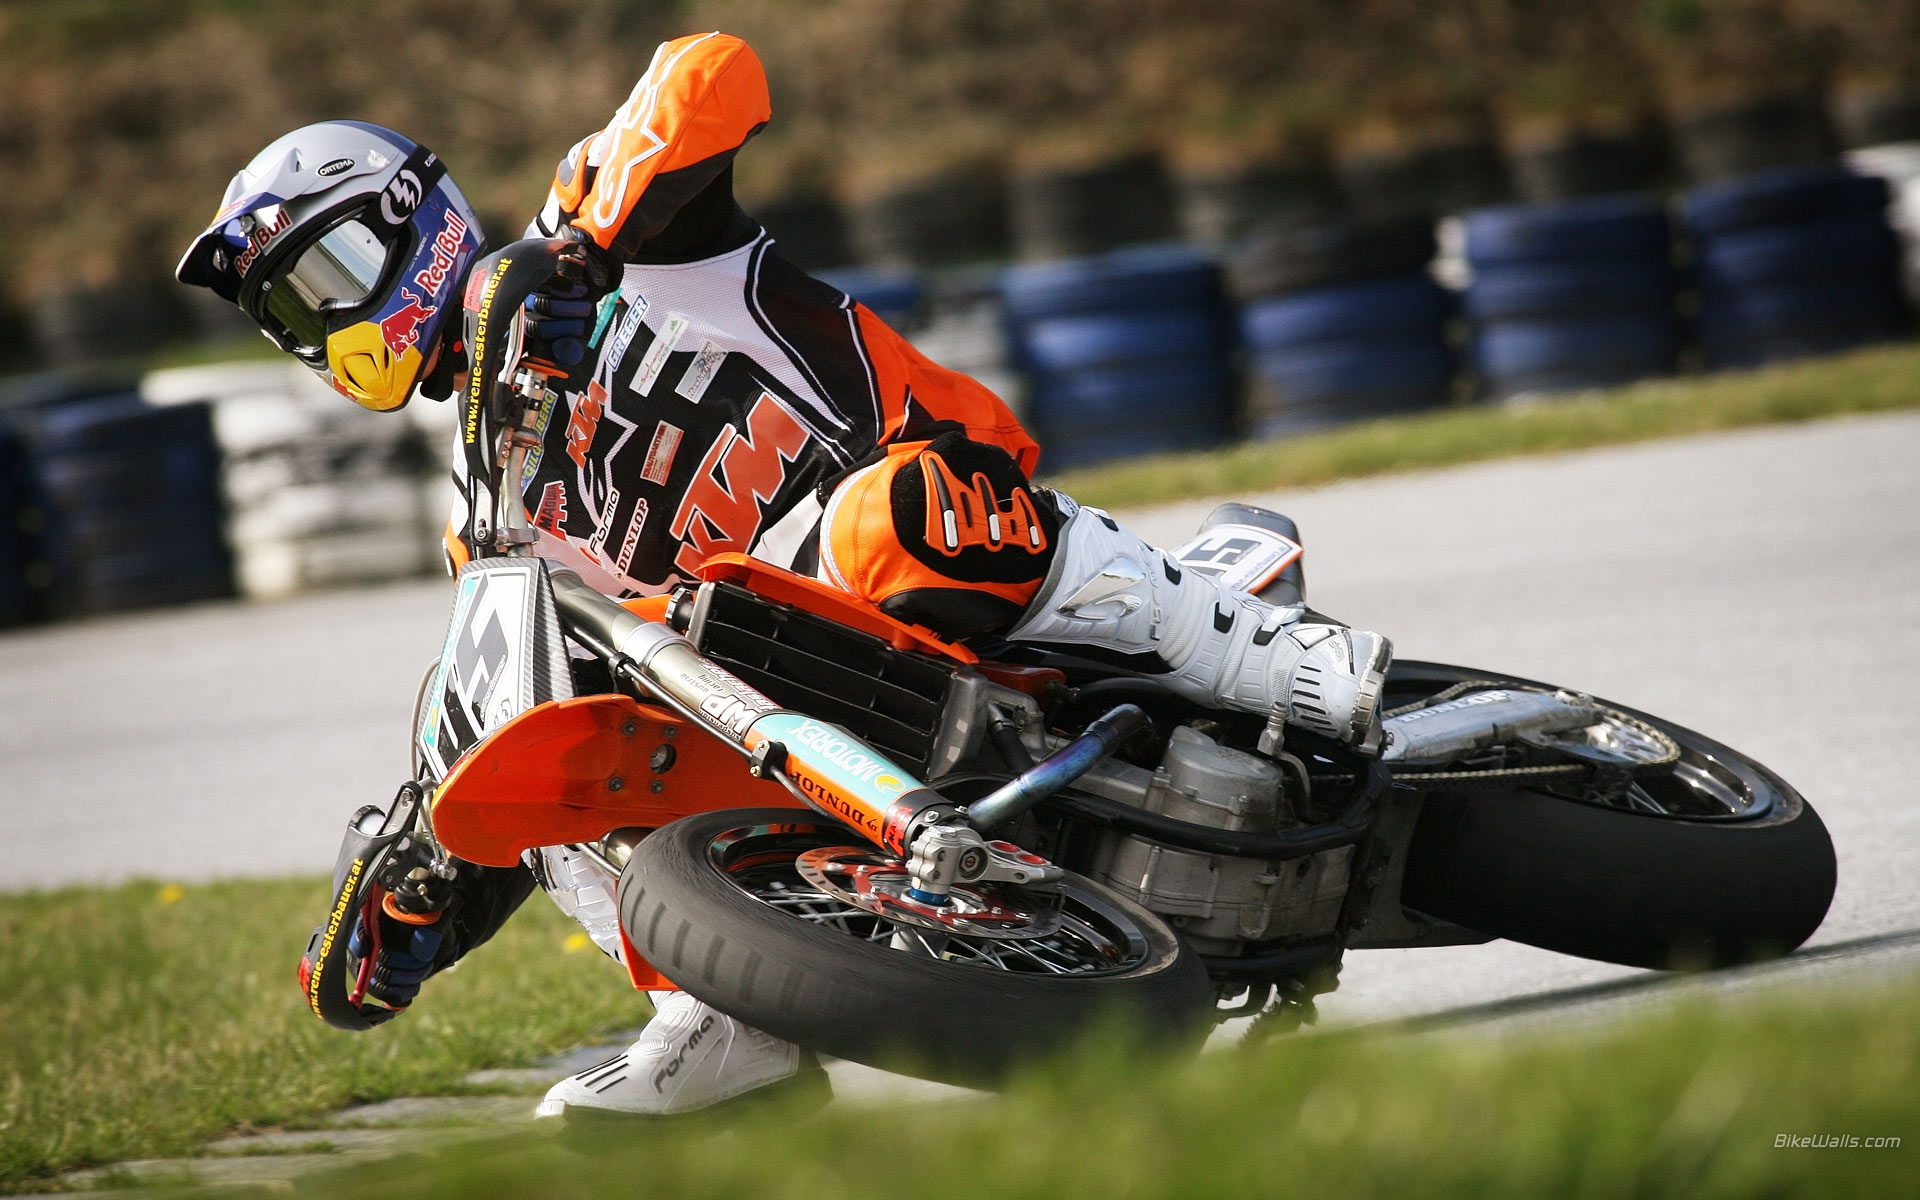 Supermoto Wallpaper